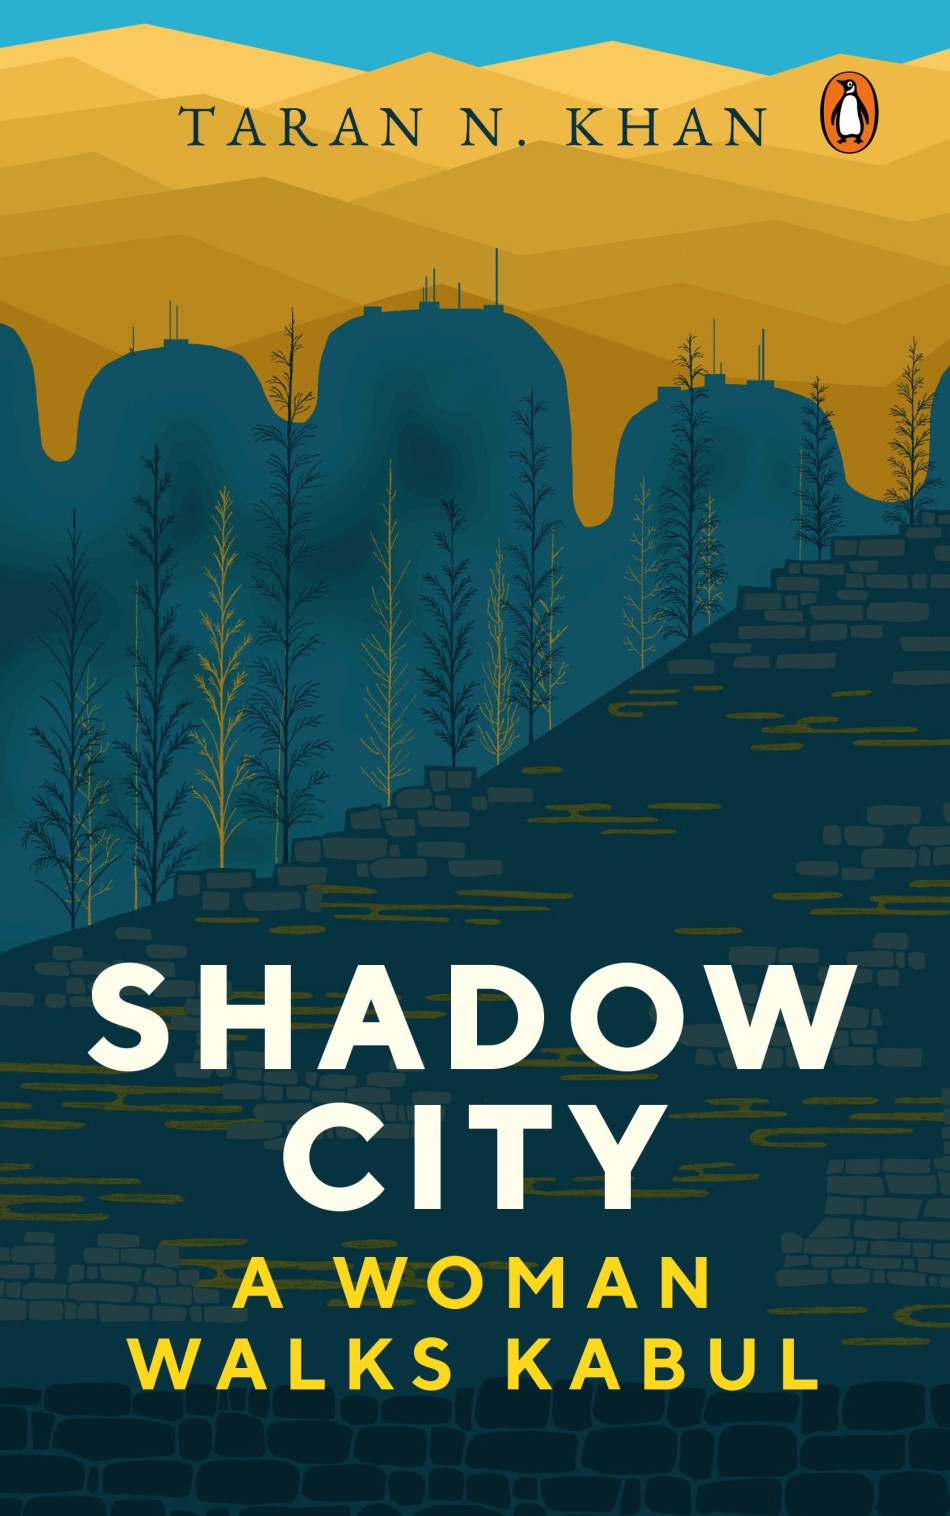 Taran Khan book Shadow City